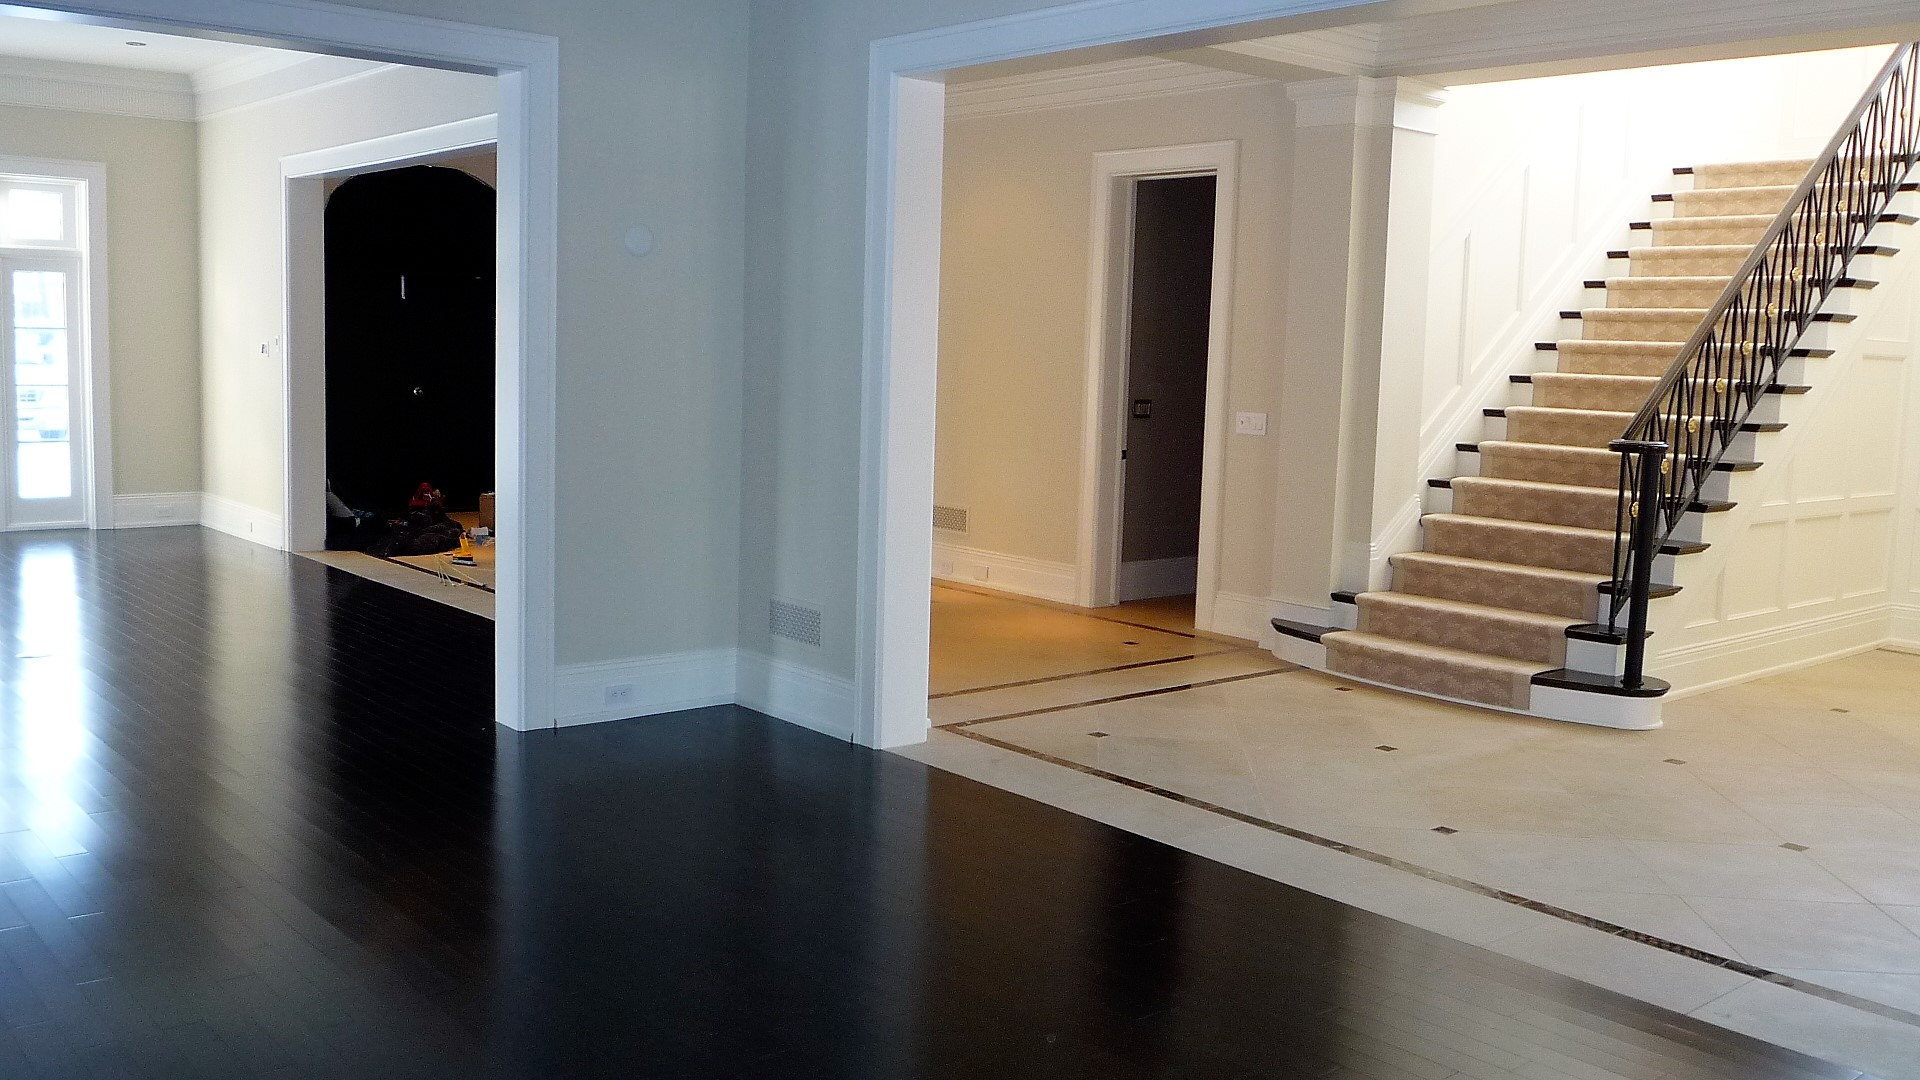 Living area Hardwood floors dark large stone tiles hardwoodstairs carpet runner.jpg